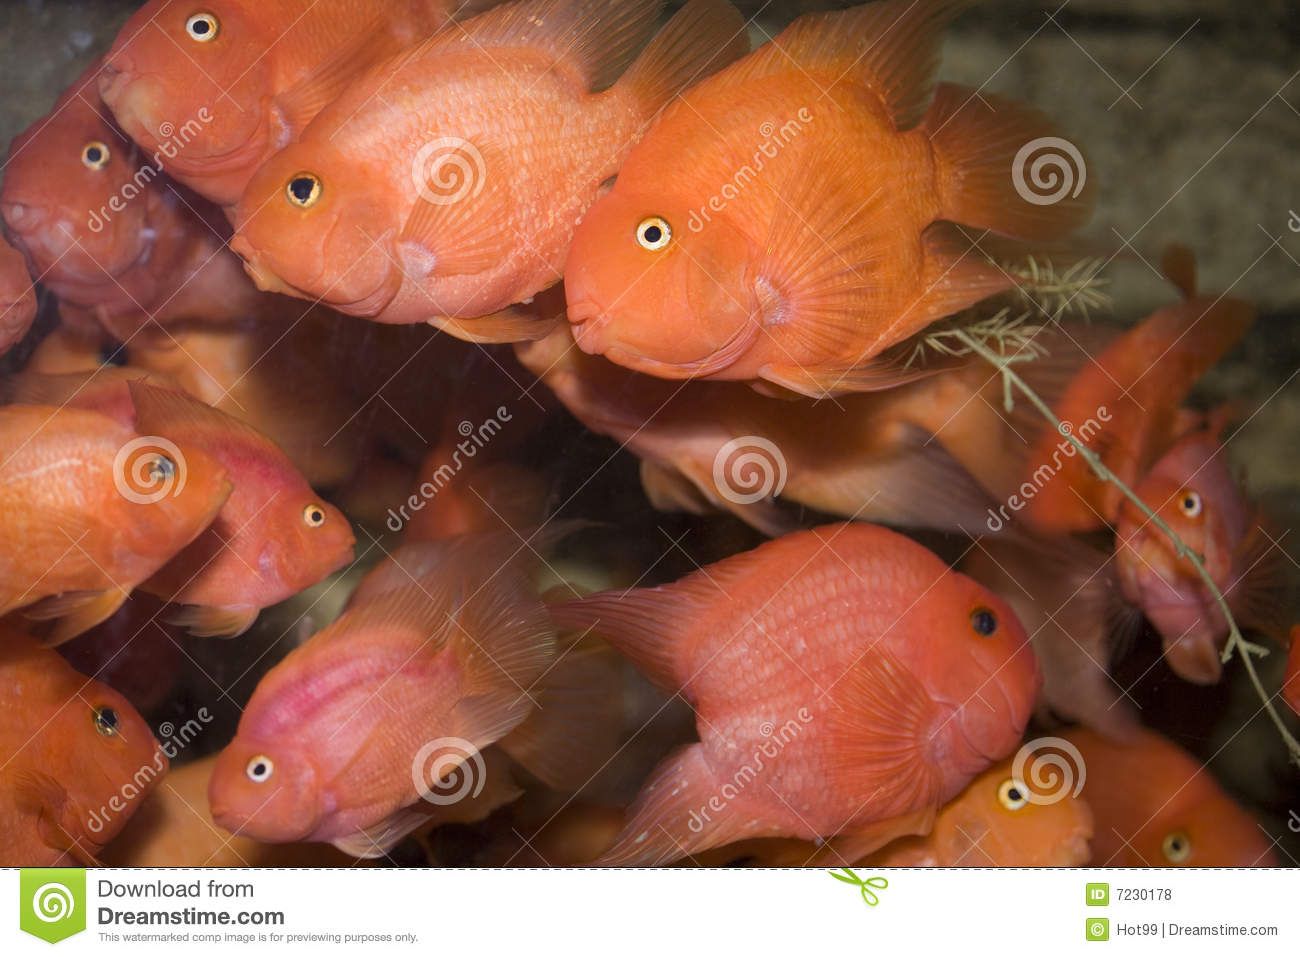 Red parrot fish royalty free stock photos image 7230178 for Red parrot fish